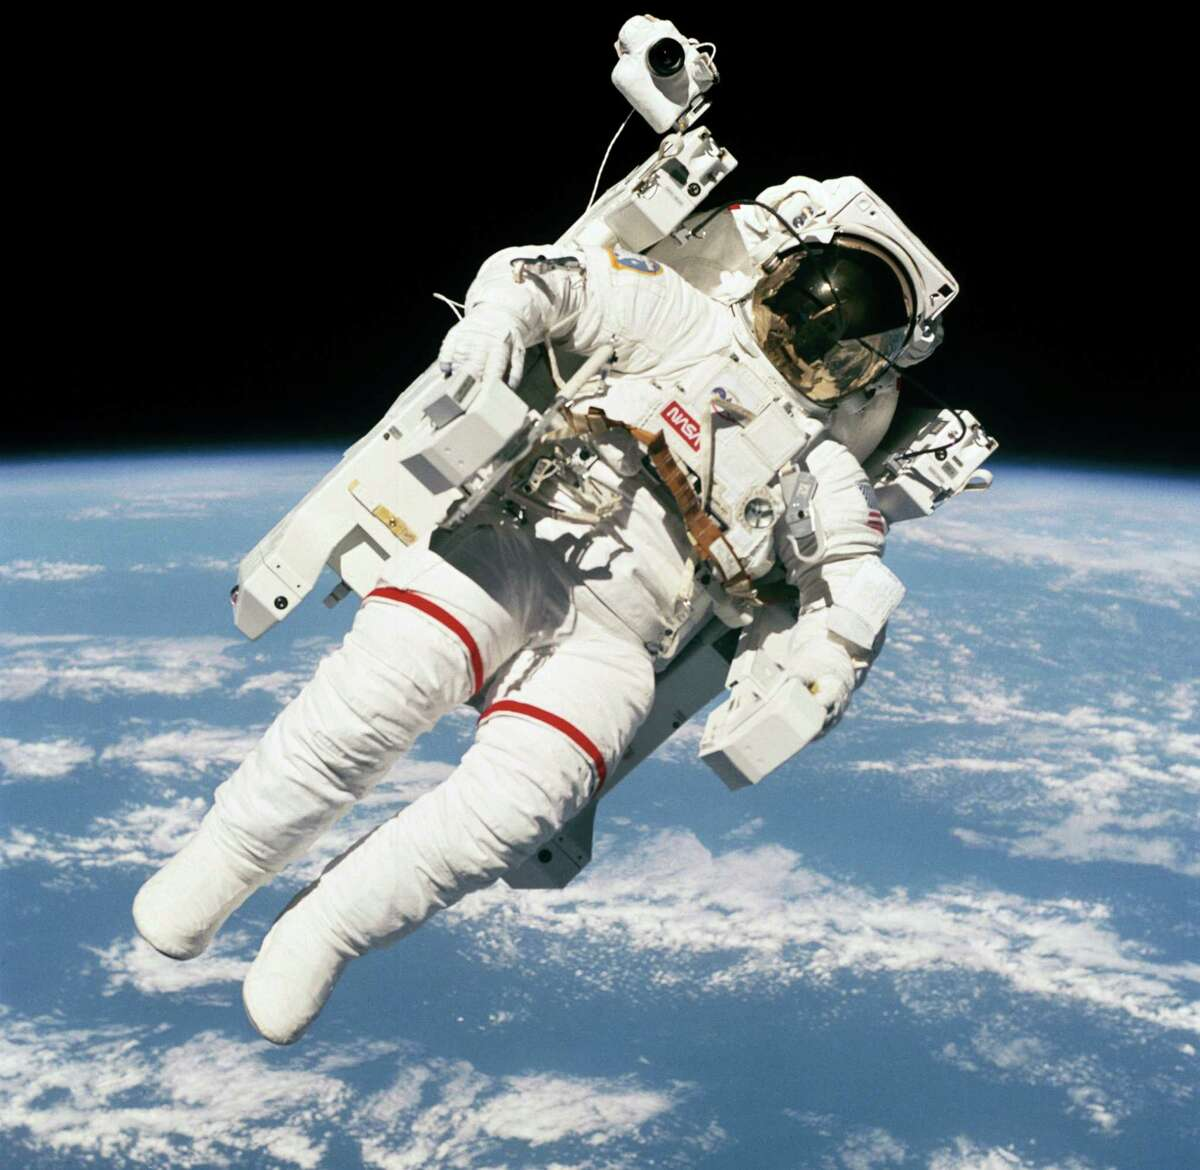 Astronaut Bruce McCandless II, STS-41-B mission specialist, uses his hands to control his movement during the first-ever spacewalk that didn't use restrictive tethers and umbilicals.